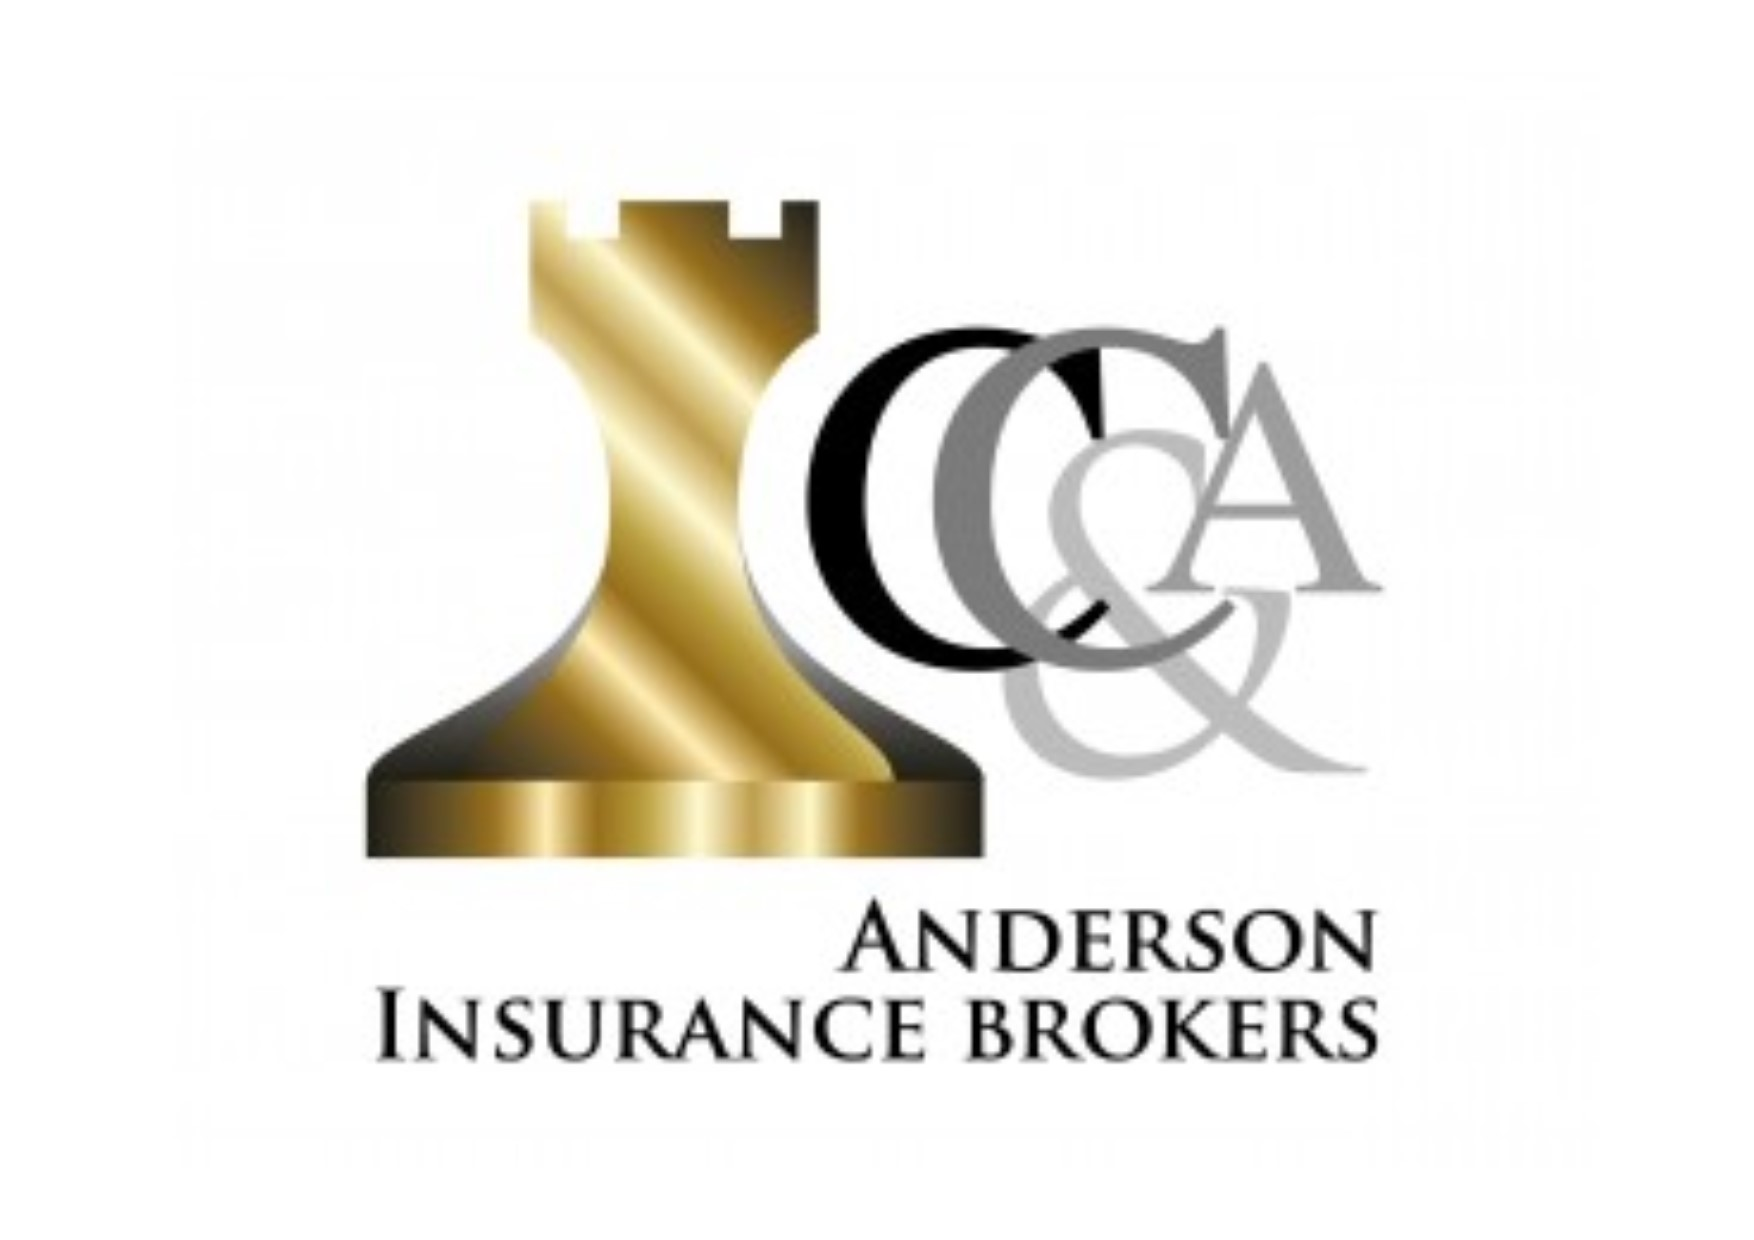 CC&A  Insurance Brokers - Anderson Insurance Brokers